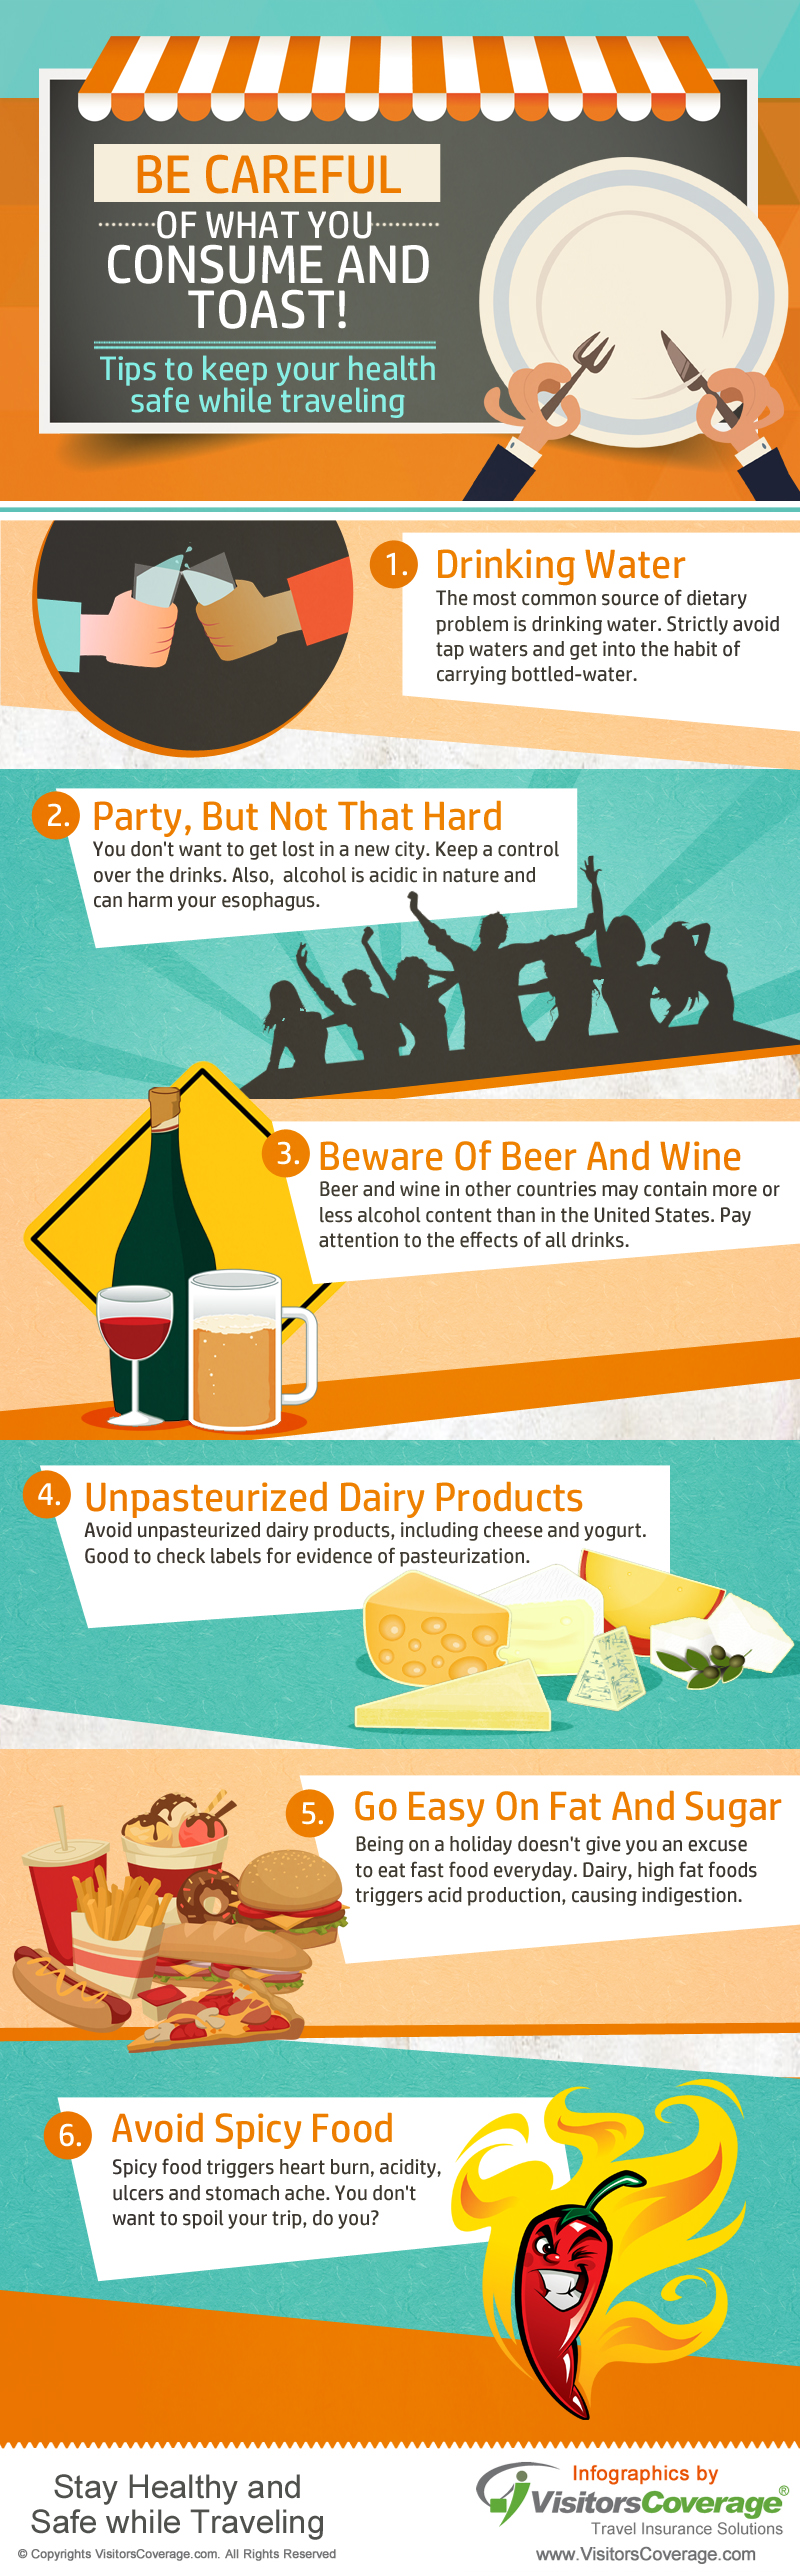 How To Stay Healthy While Traveling - Infographic